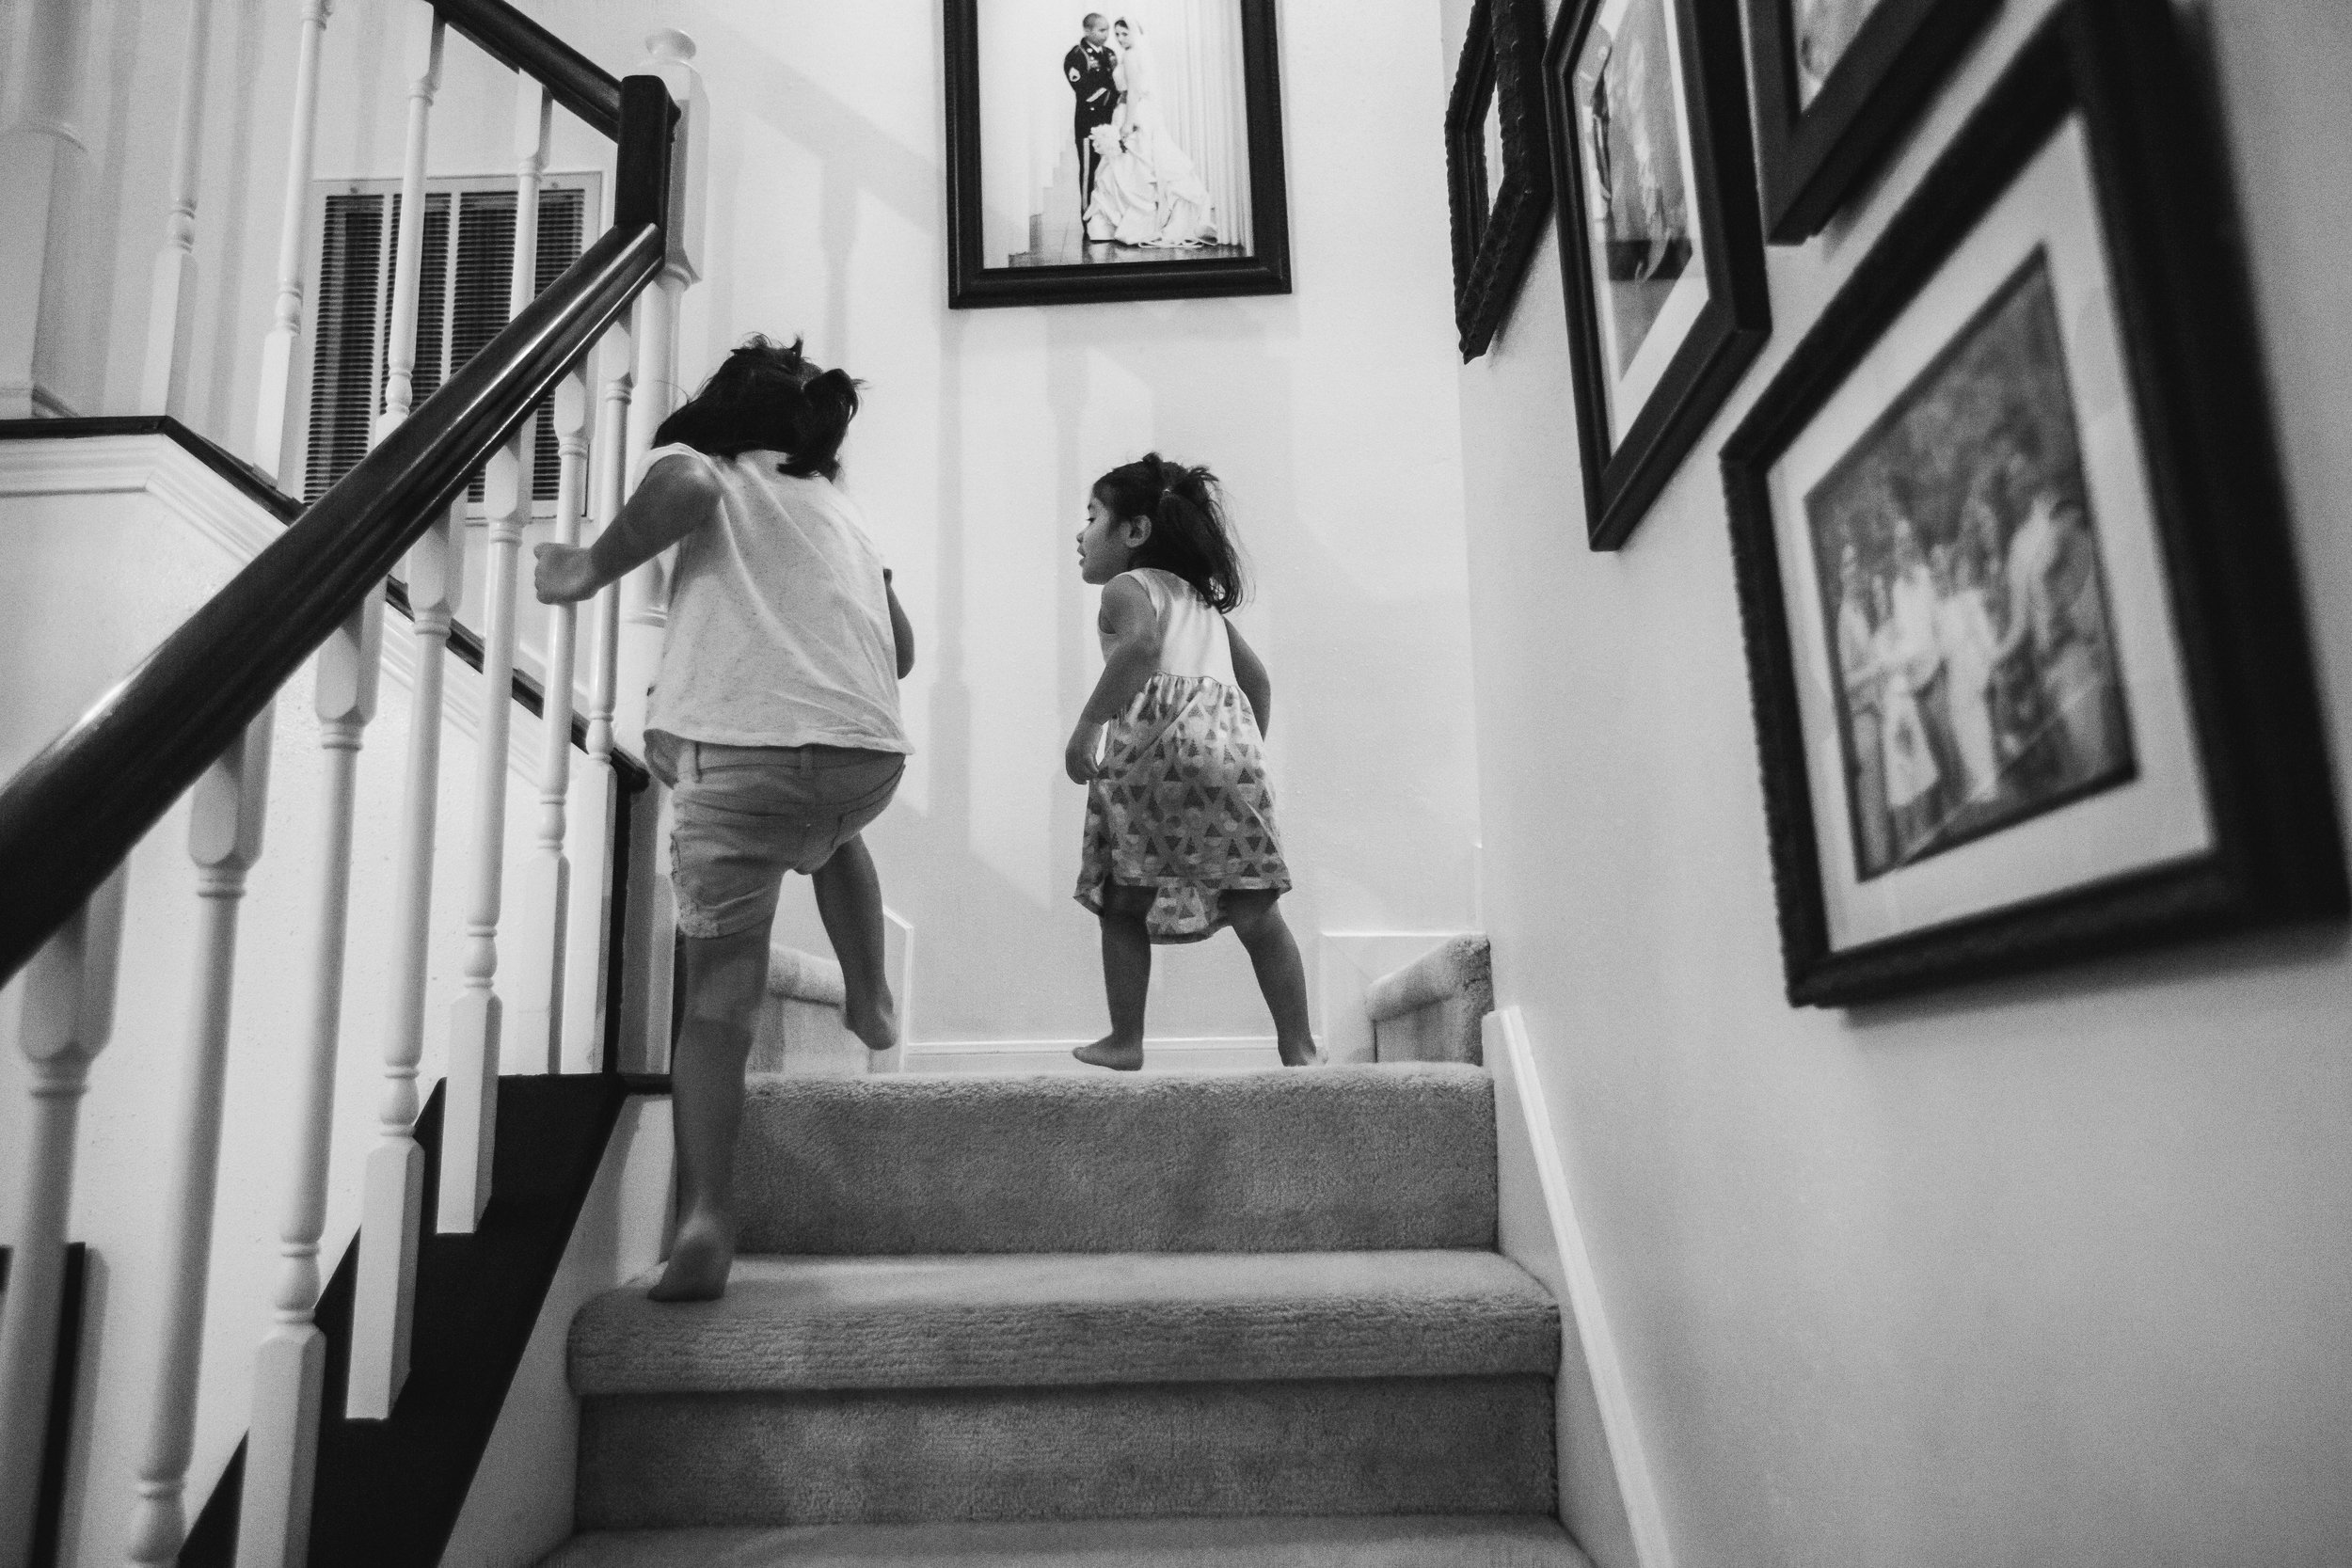 Little girls going up stairs